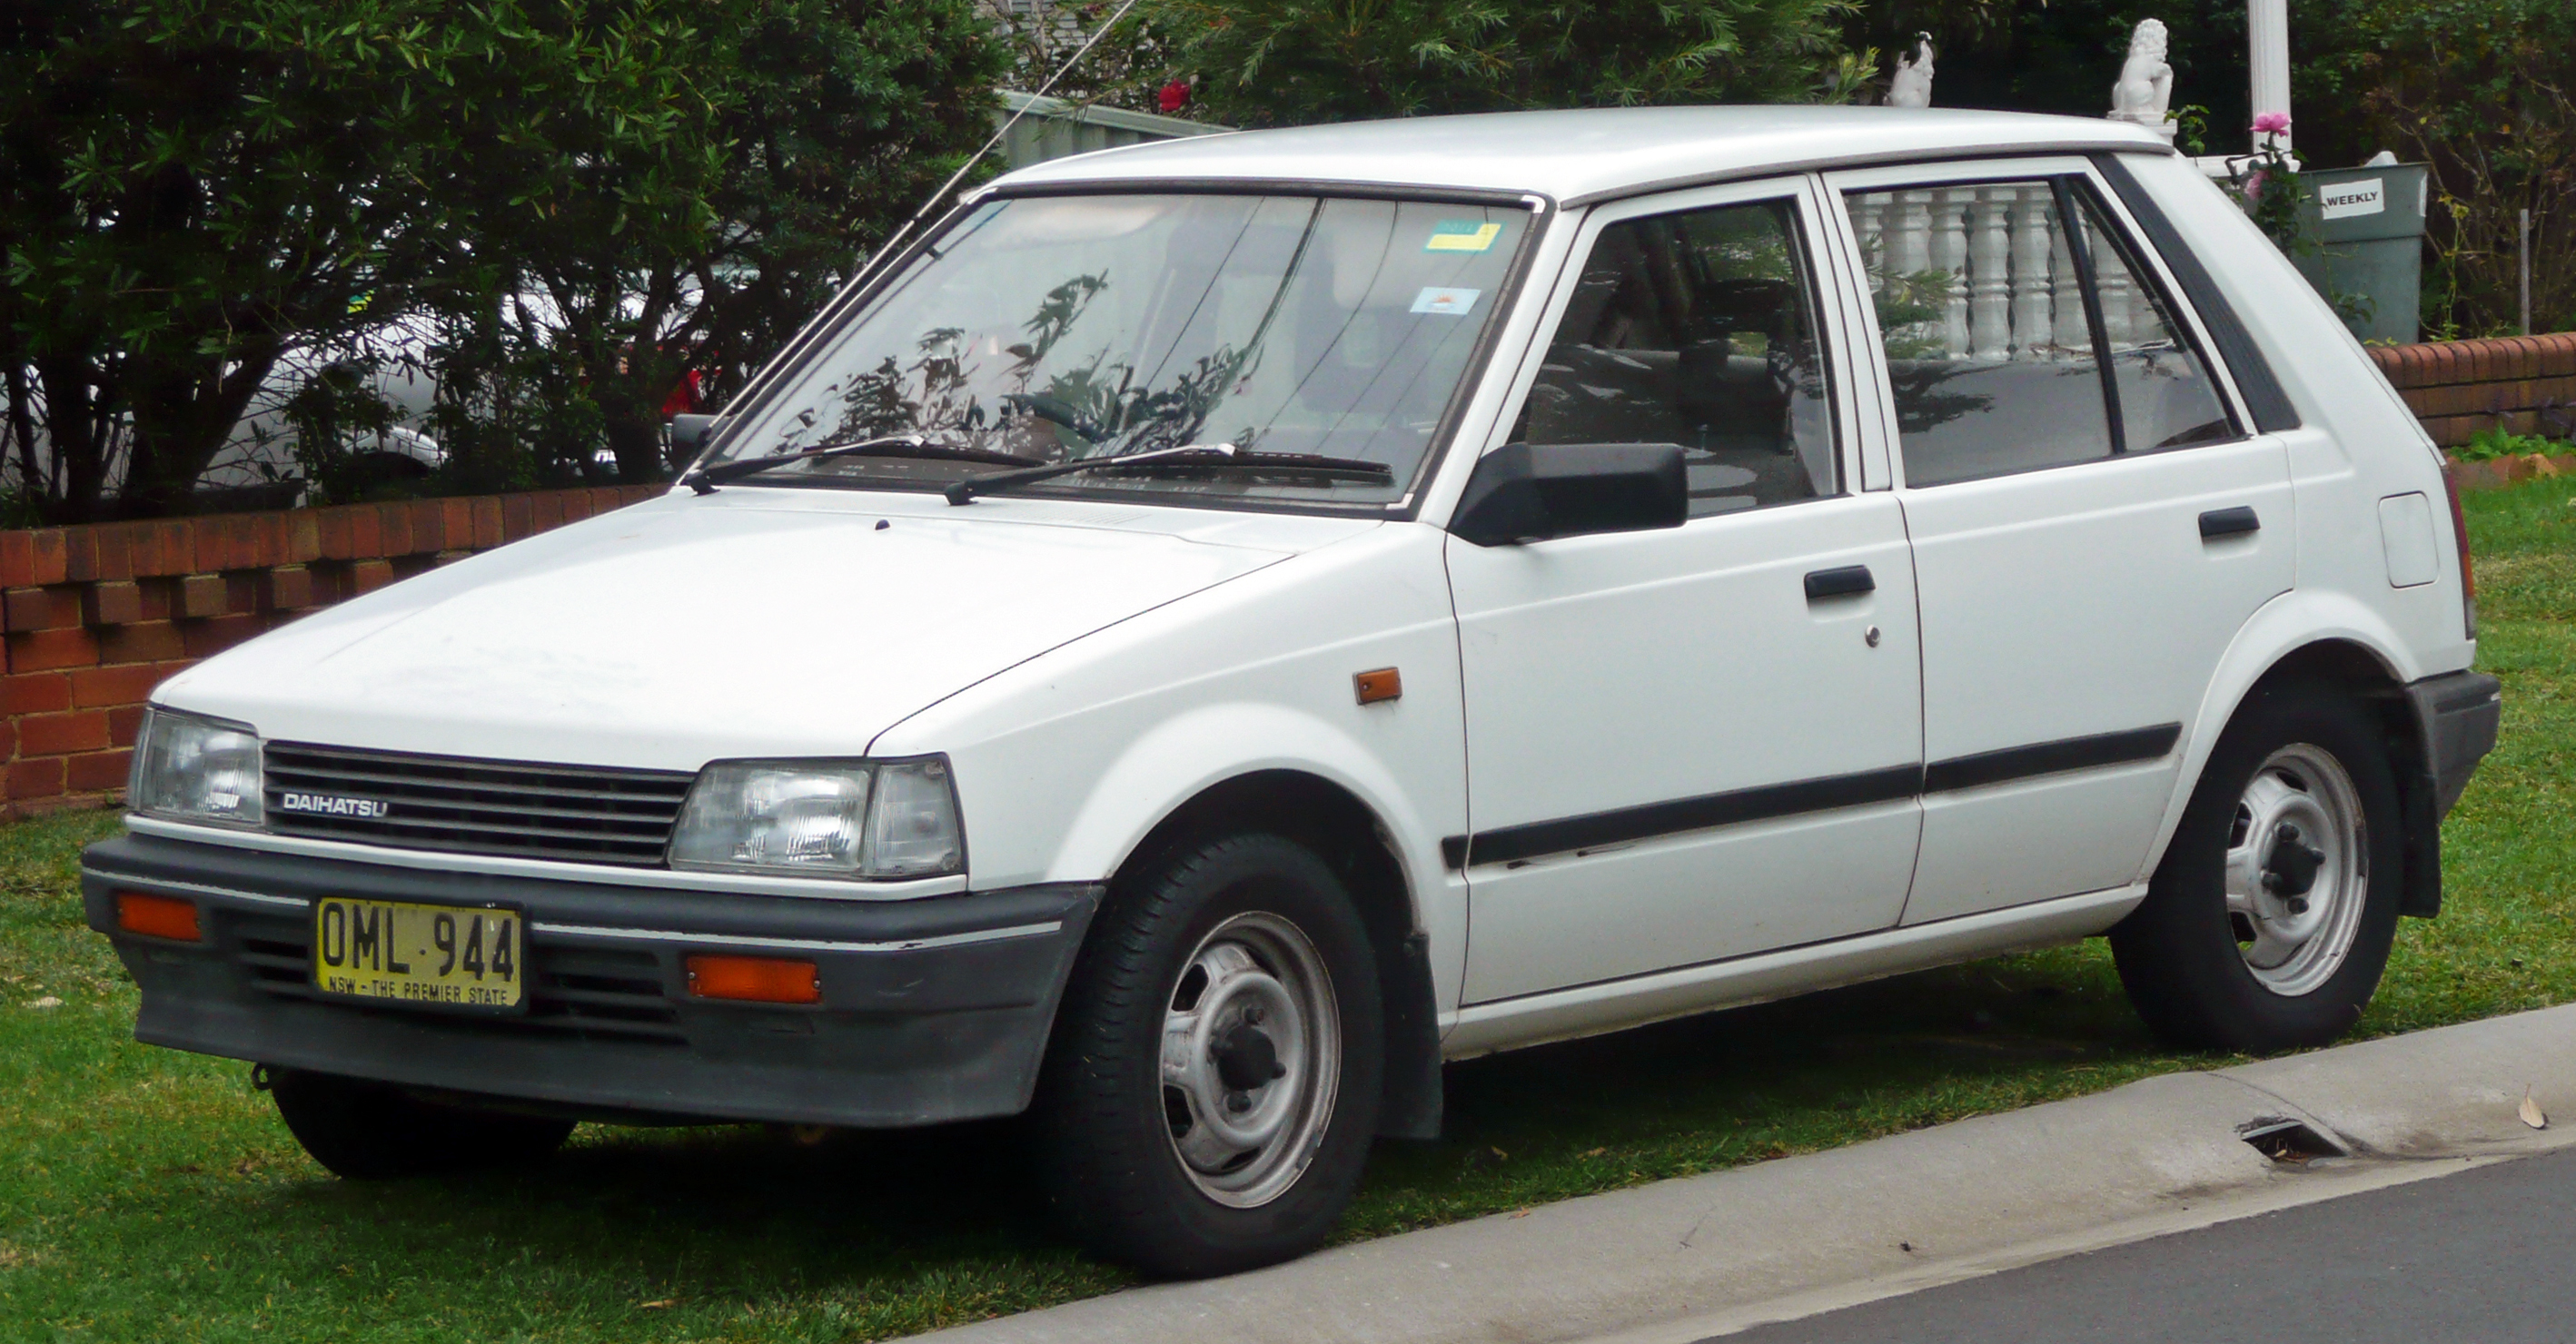 Daihatsu Charade   pictures, information and specs - Auto-Database.com